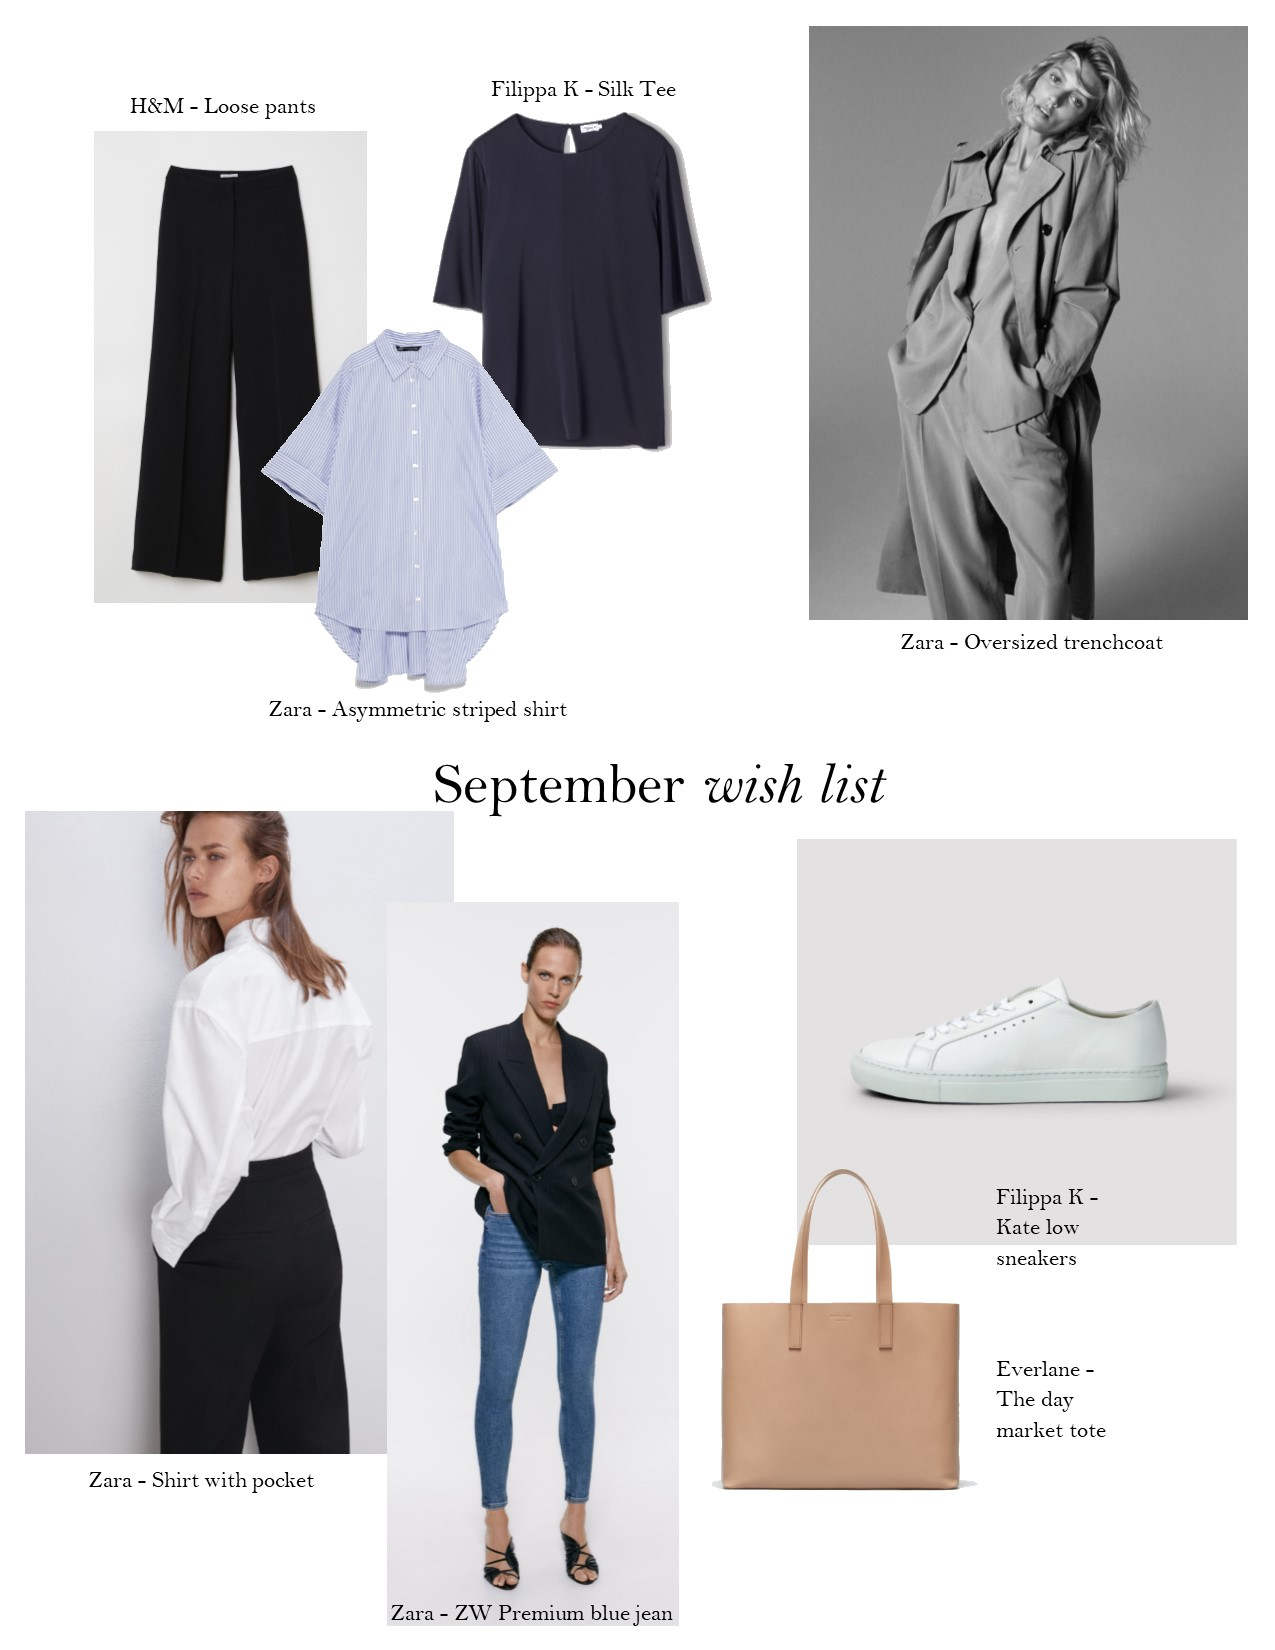 September wish list 2019.jpg